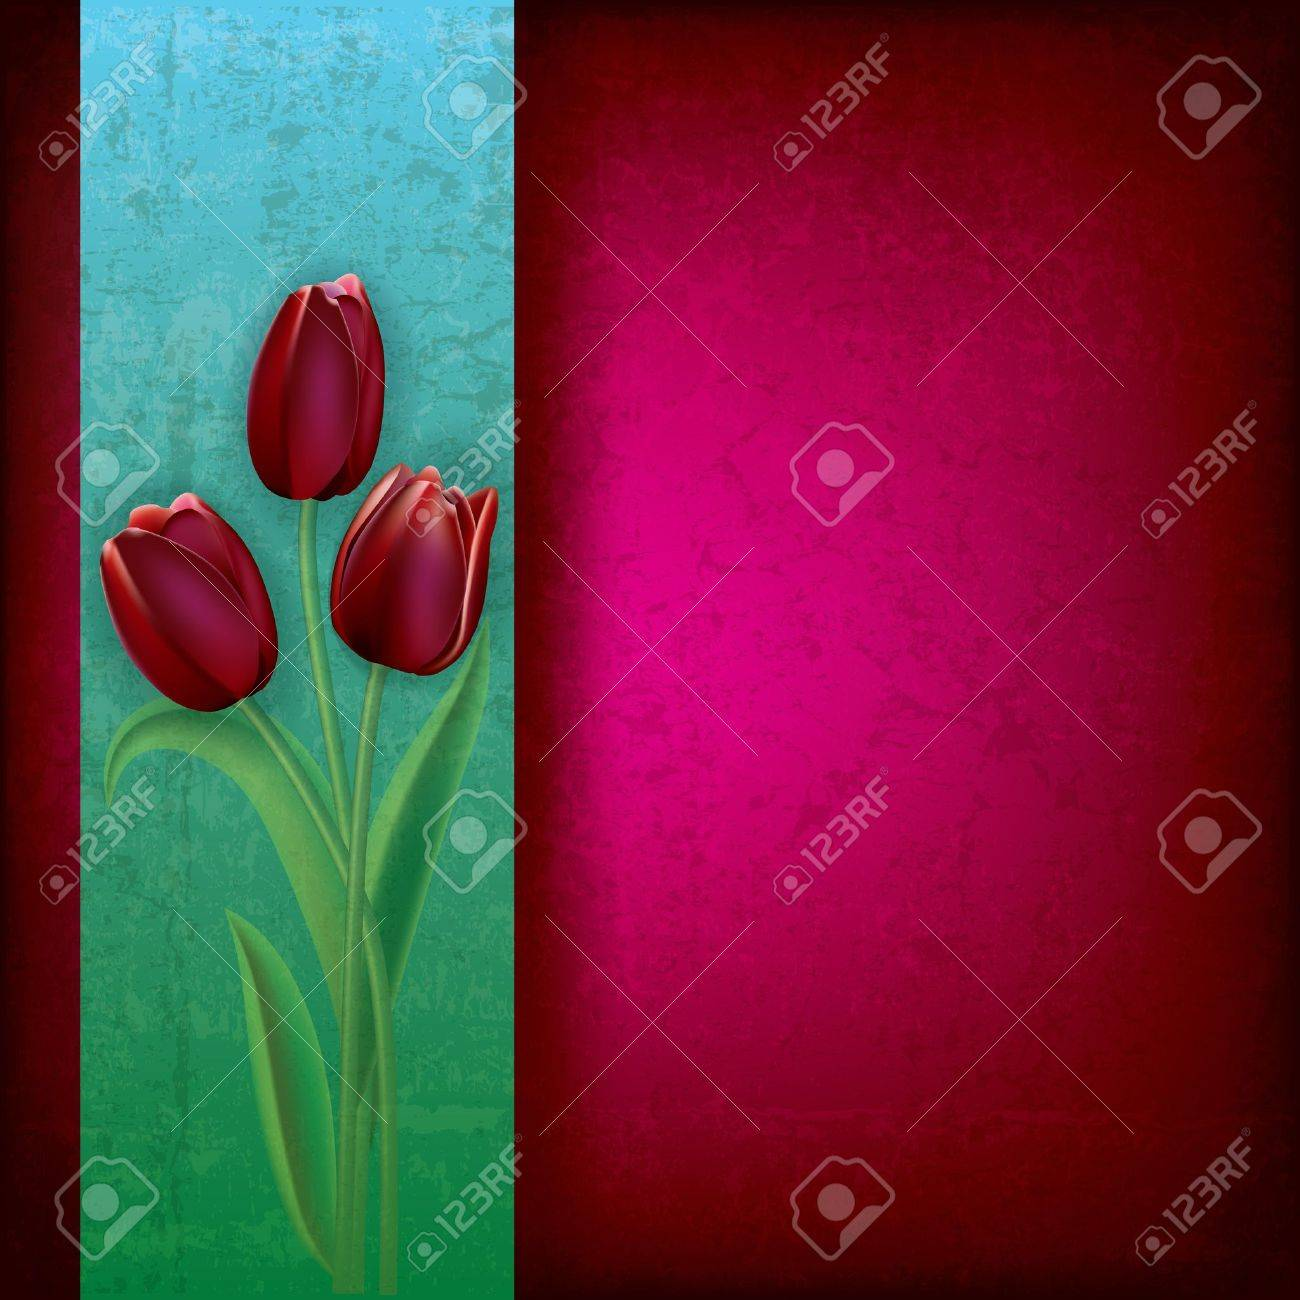 abstract purple grunge background with red tulips Stock Vector - 12837568